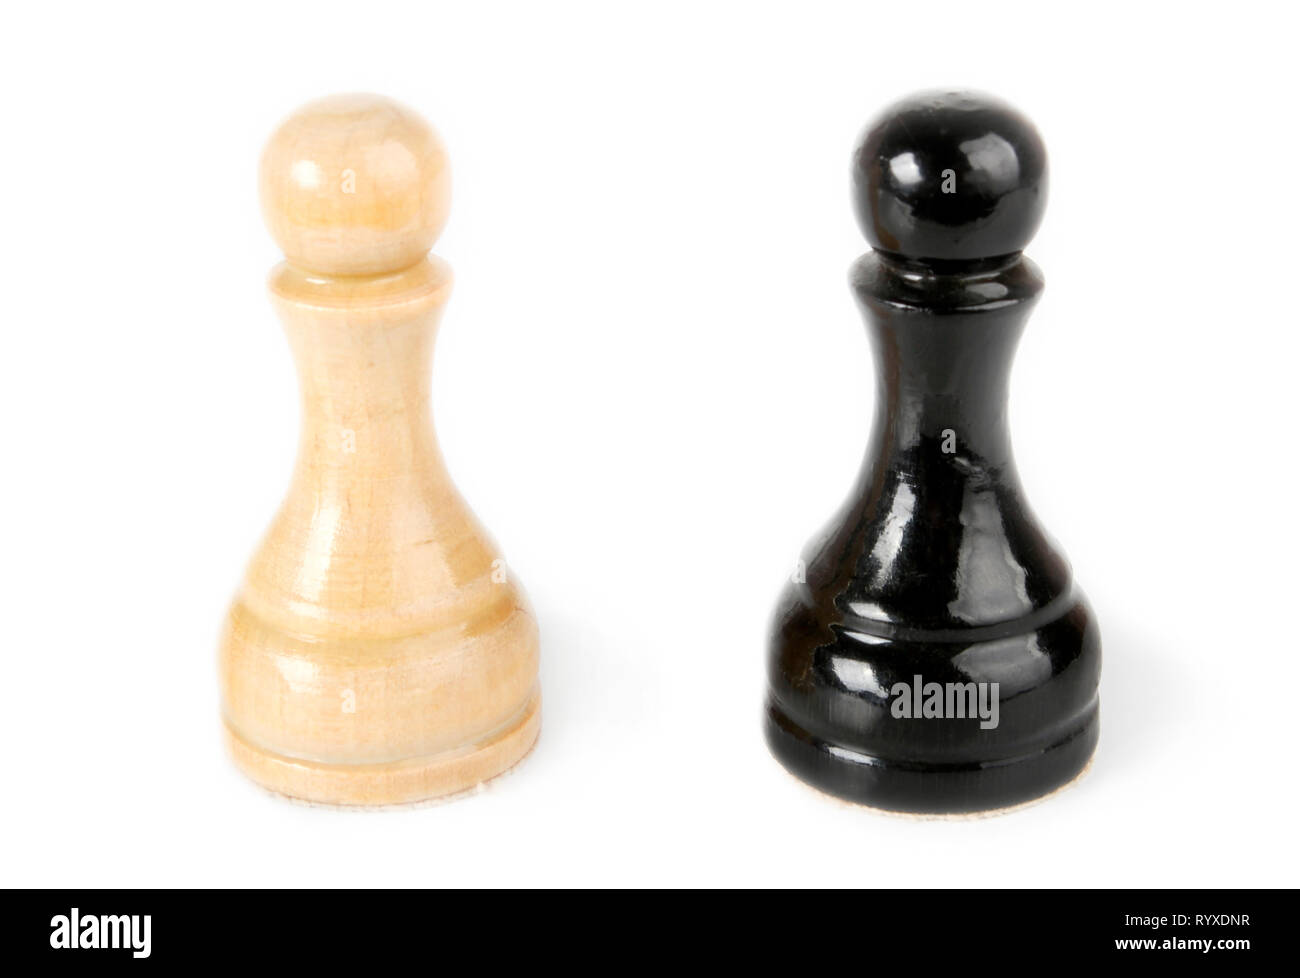 Black and white pawns isolated on white - Stock Image